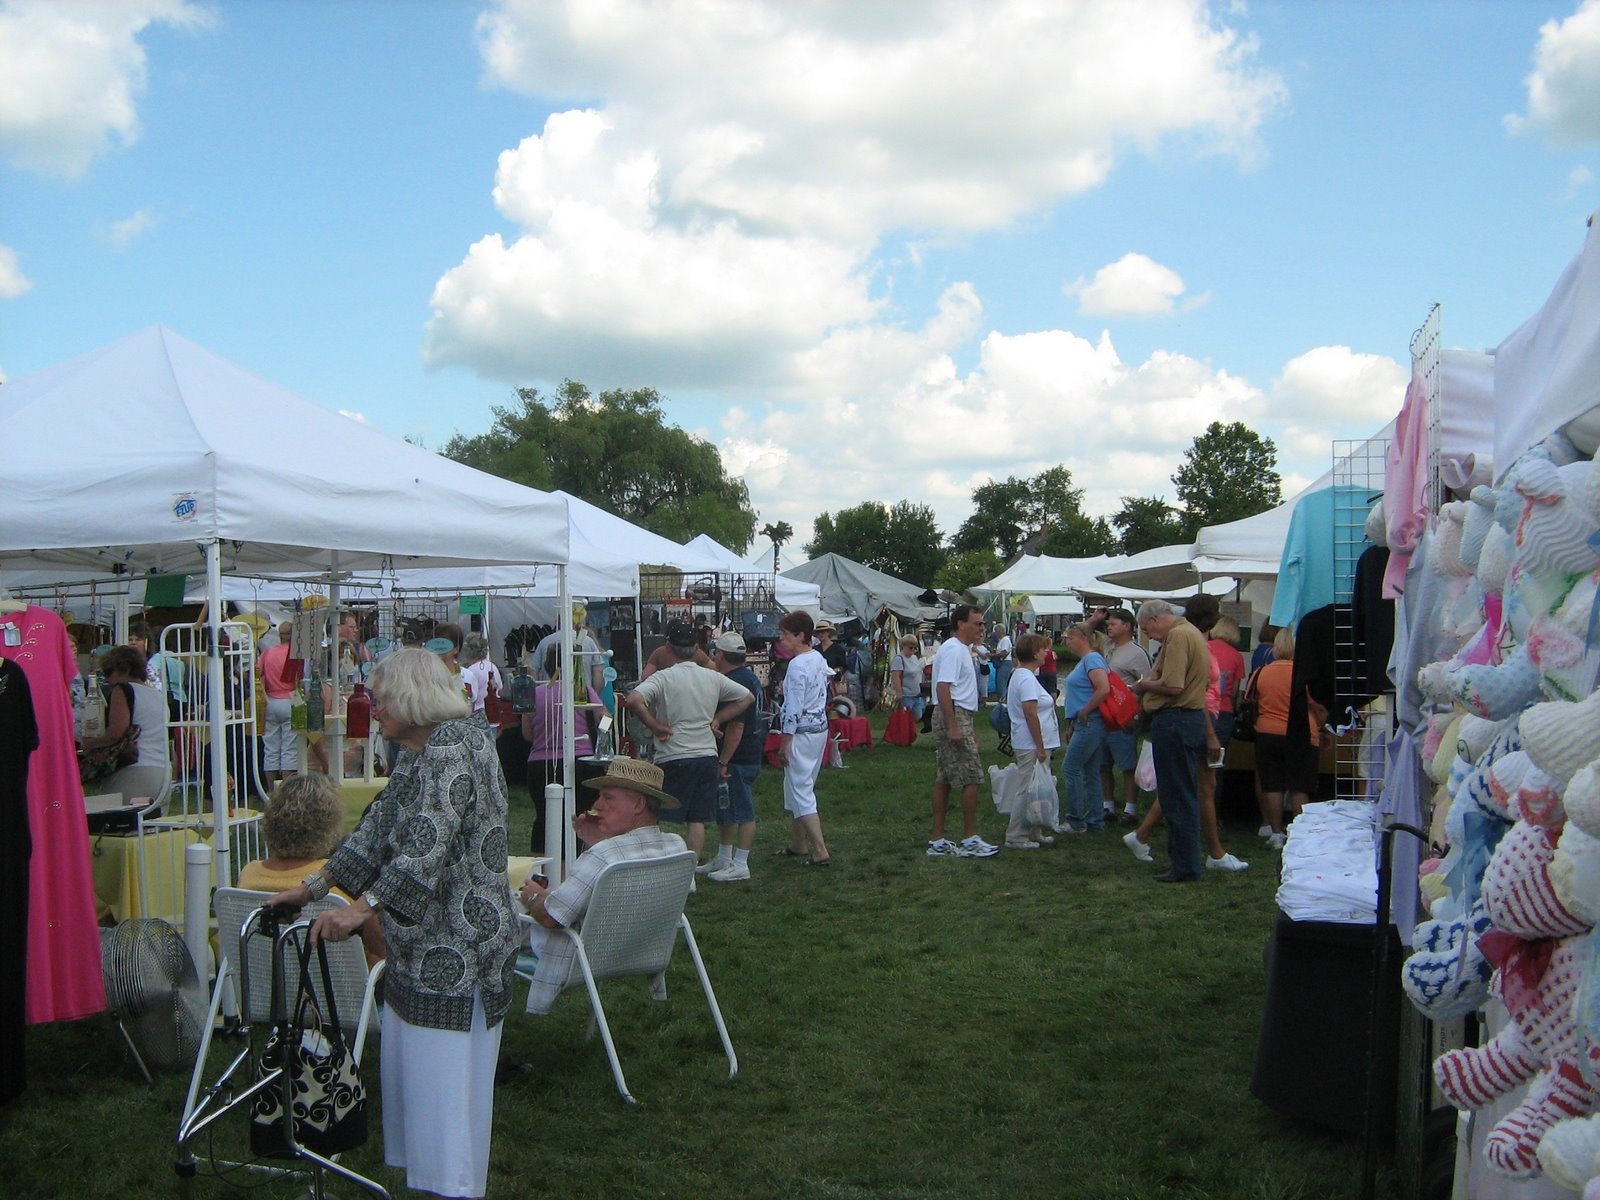 Amish acres arts and crafts fair mademark travel for Arts and crafts festival